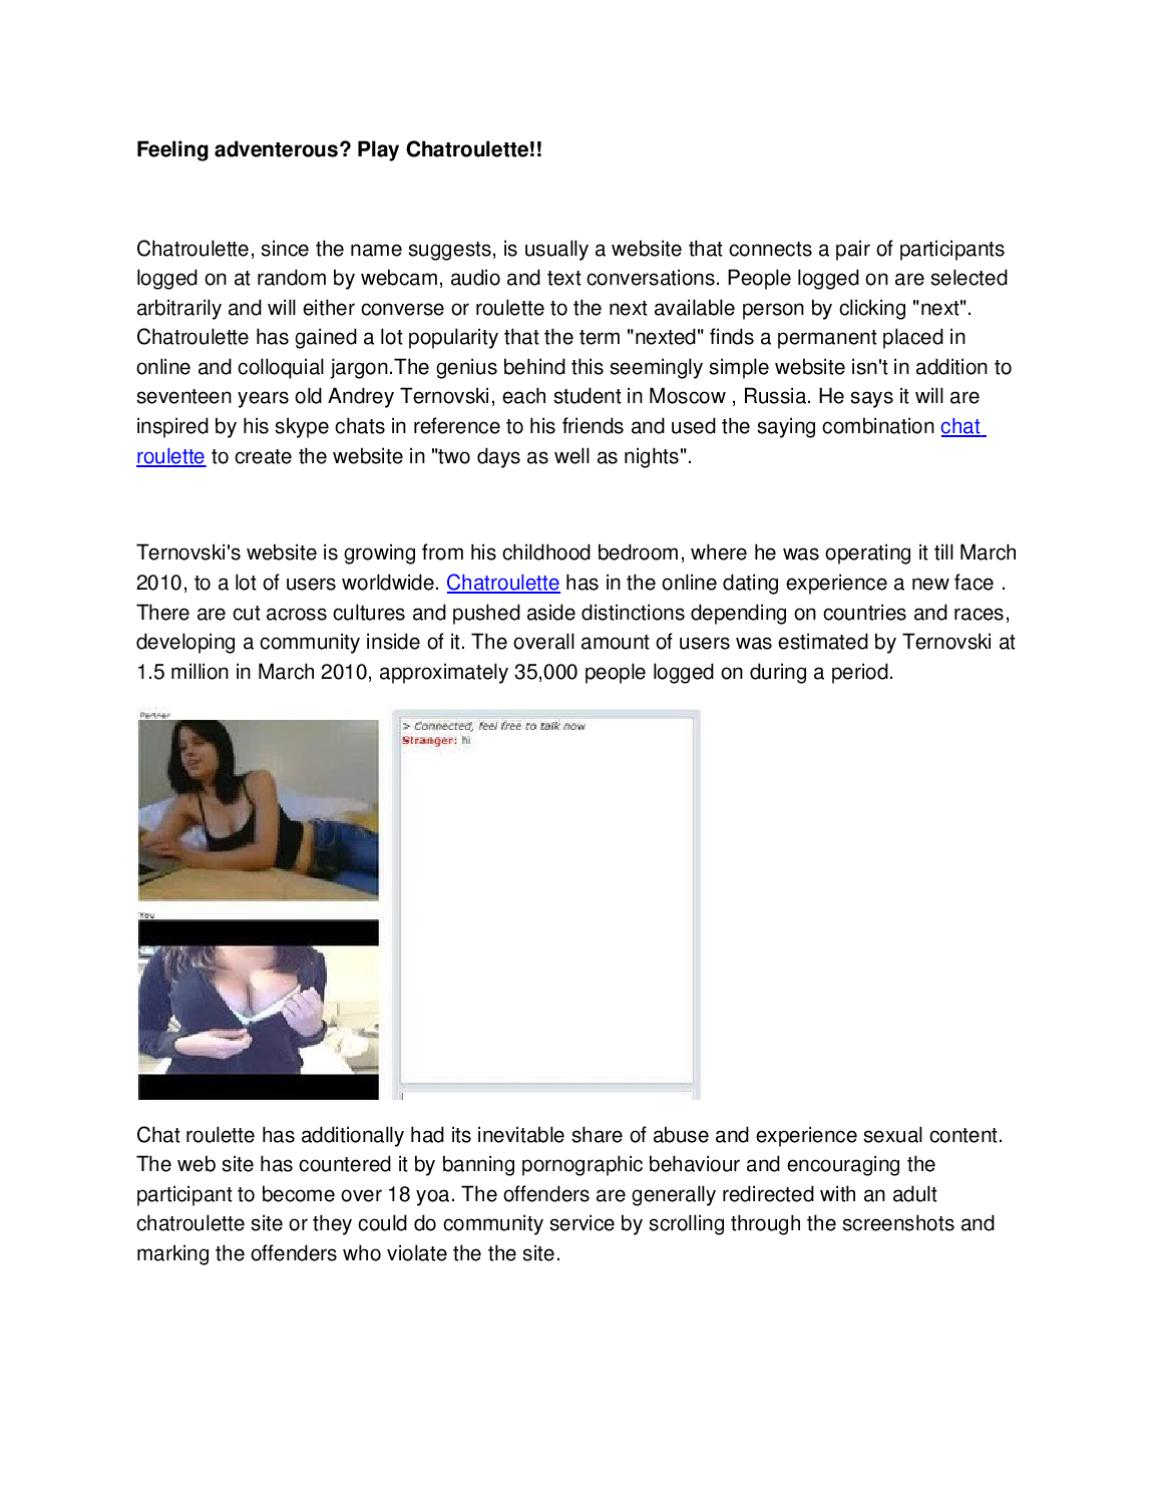 Chatroulette Wocchat Chatroulette And Video Chat